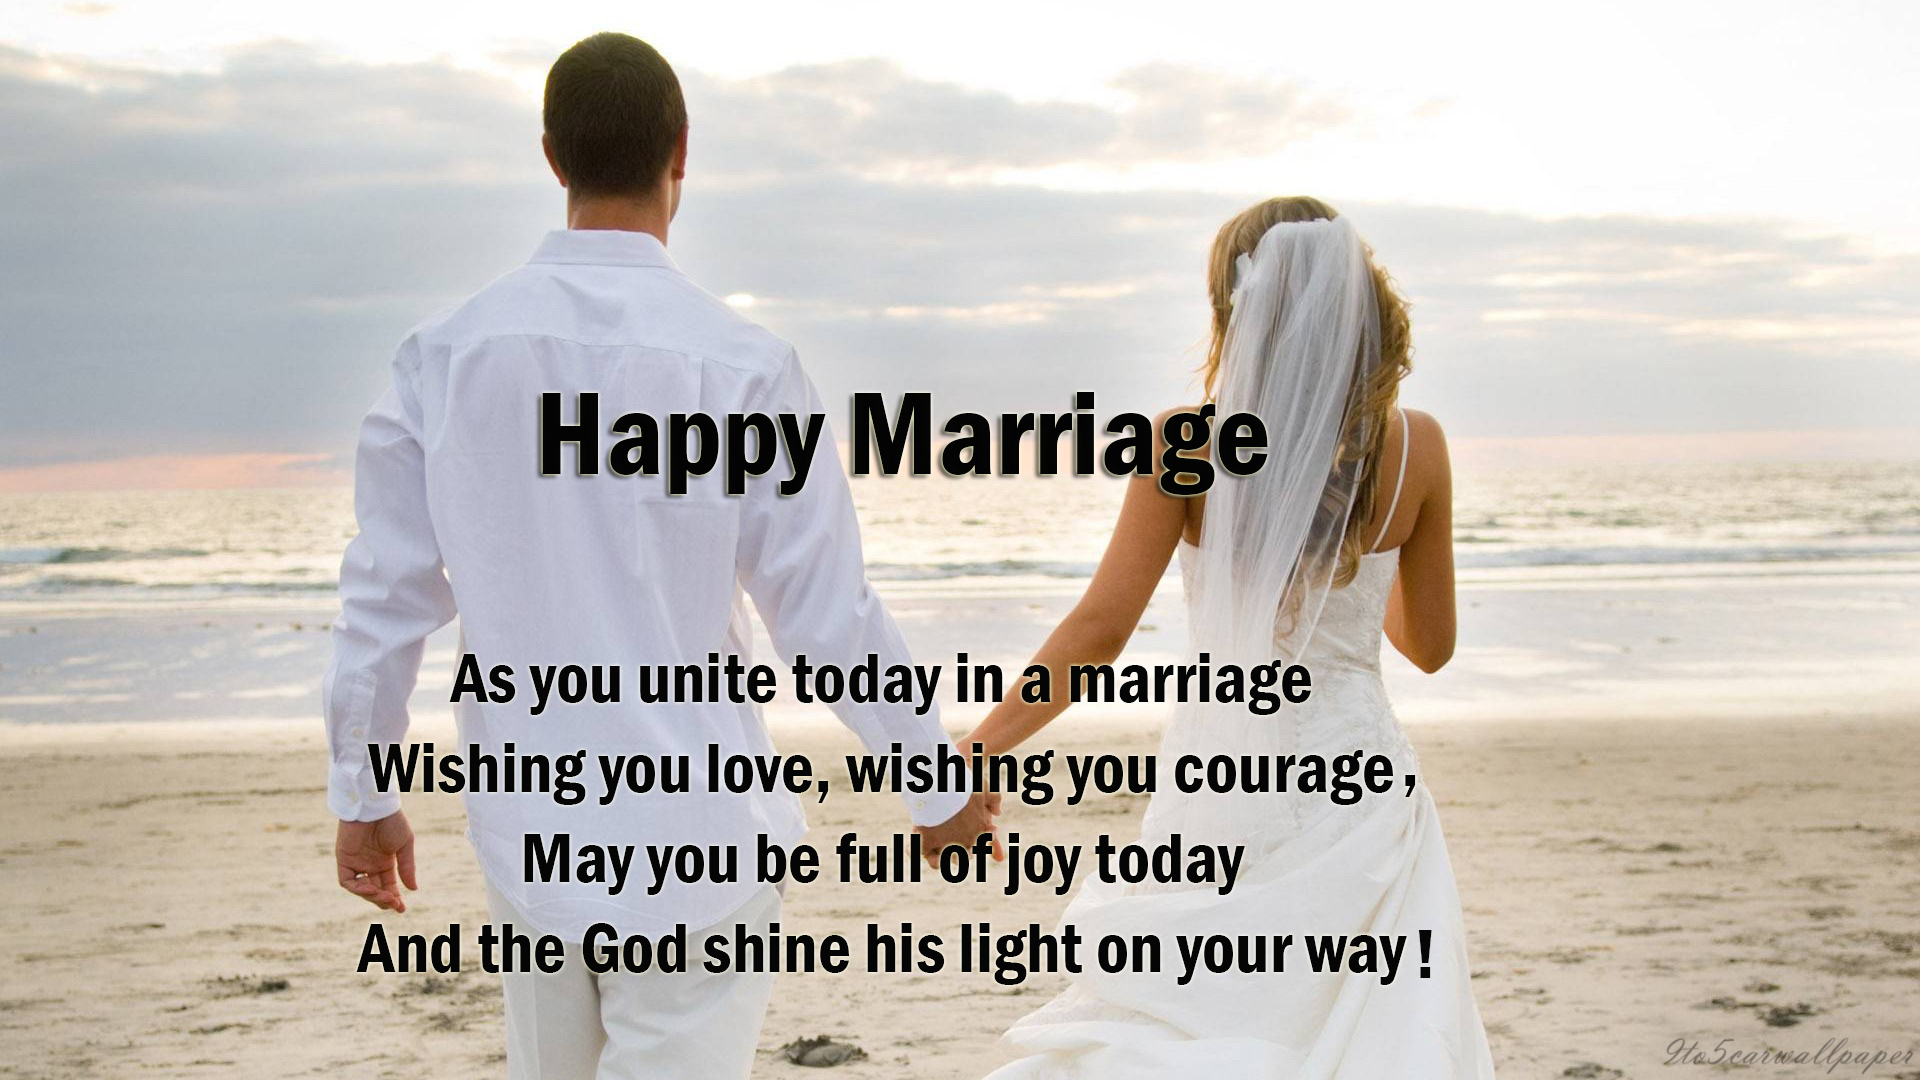 happy-marriage-quotes-images-wallpapers-cards-2017